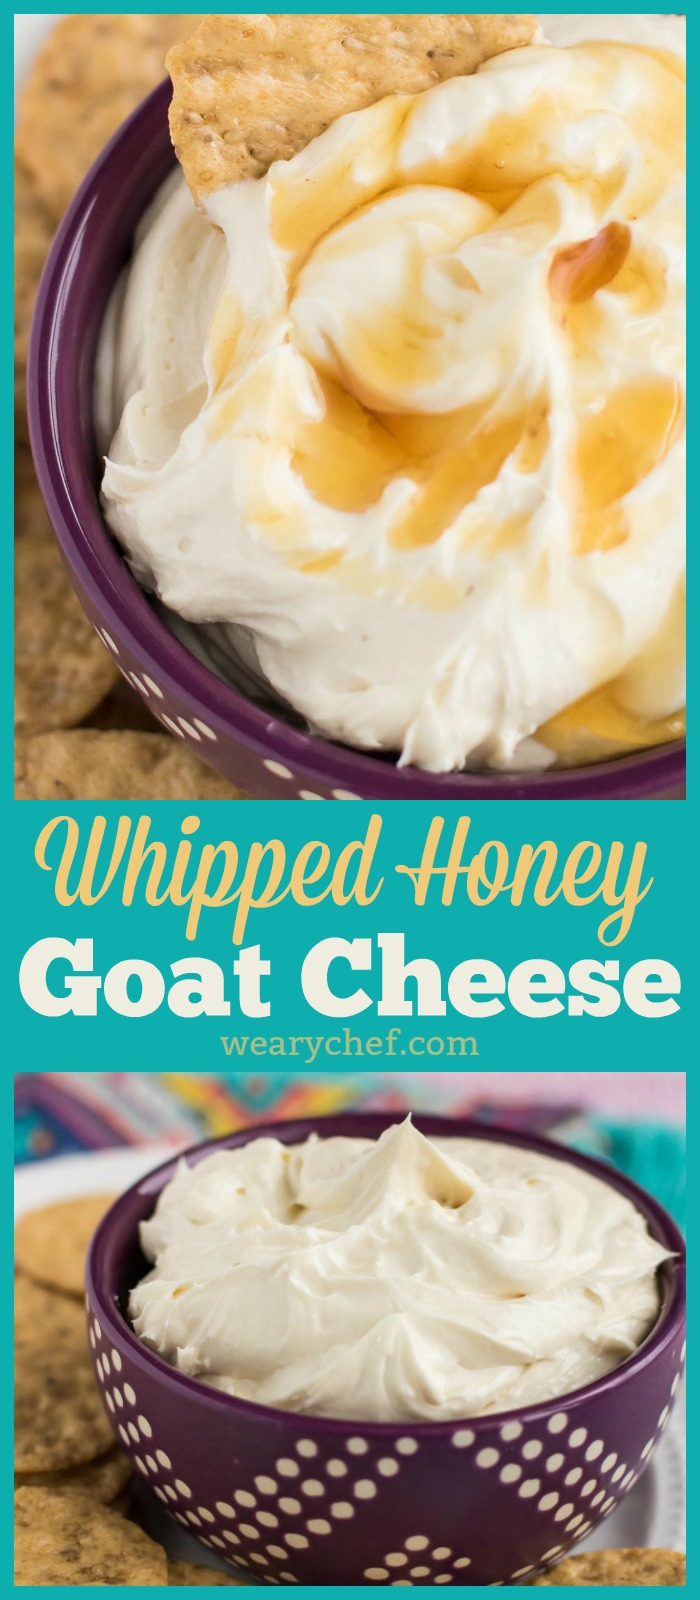 Looking for an easy appetizer to serve at your next party? This Honey Whipped Goat Cheese Spread is IT! All you need is tangy chevre, rich cream cheese, and sweet raw honey. #honey #chevre #goatcheese #cheesedip #appetizer